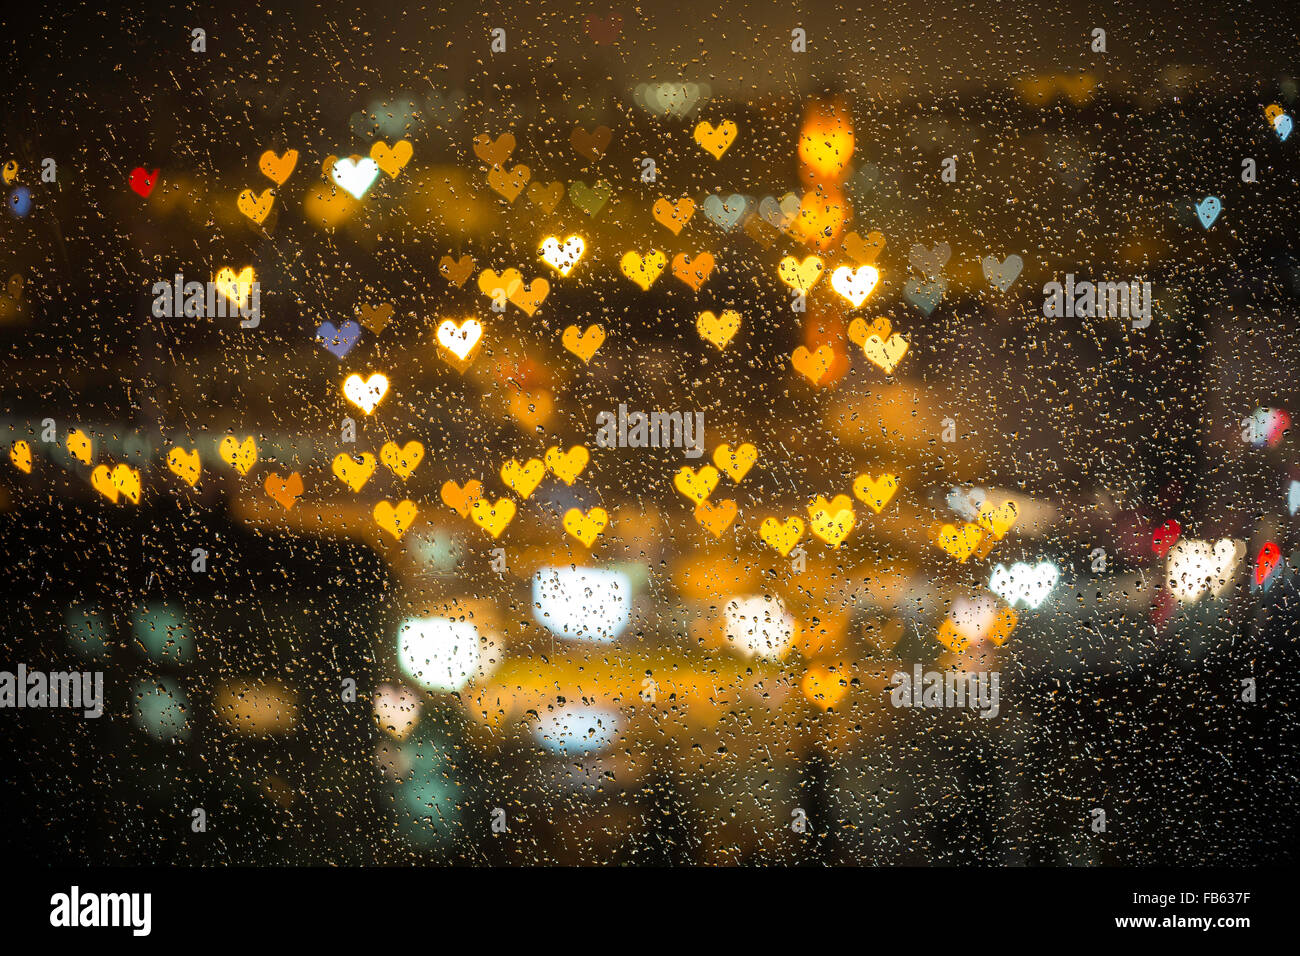 Small colorful hearth bokeh behind the wet glass for valentine day love concept background - Stock Image